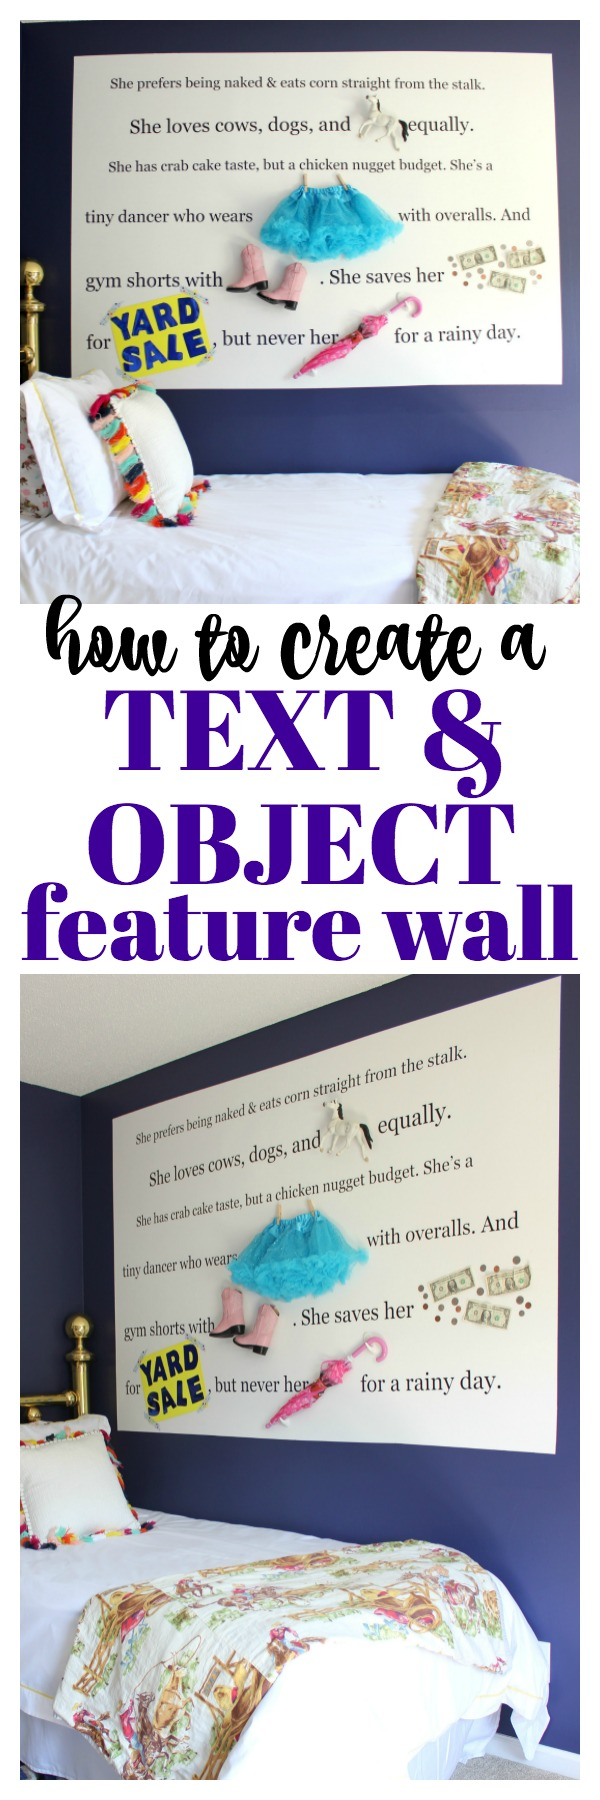 DIY Object and Text Feature Wall | Accent Wall Designs | Accent Wall Ideas | Kid's Room Ideas | DIY Accent Wall | Feature Wall Ideas